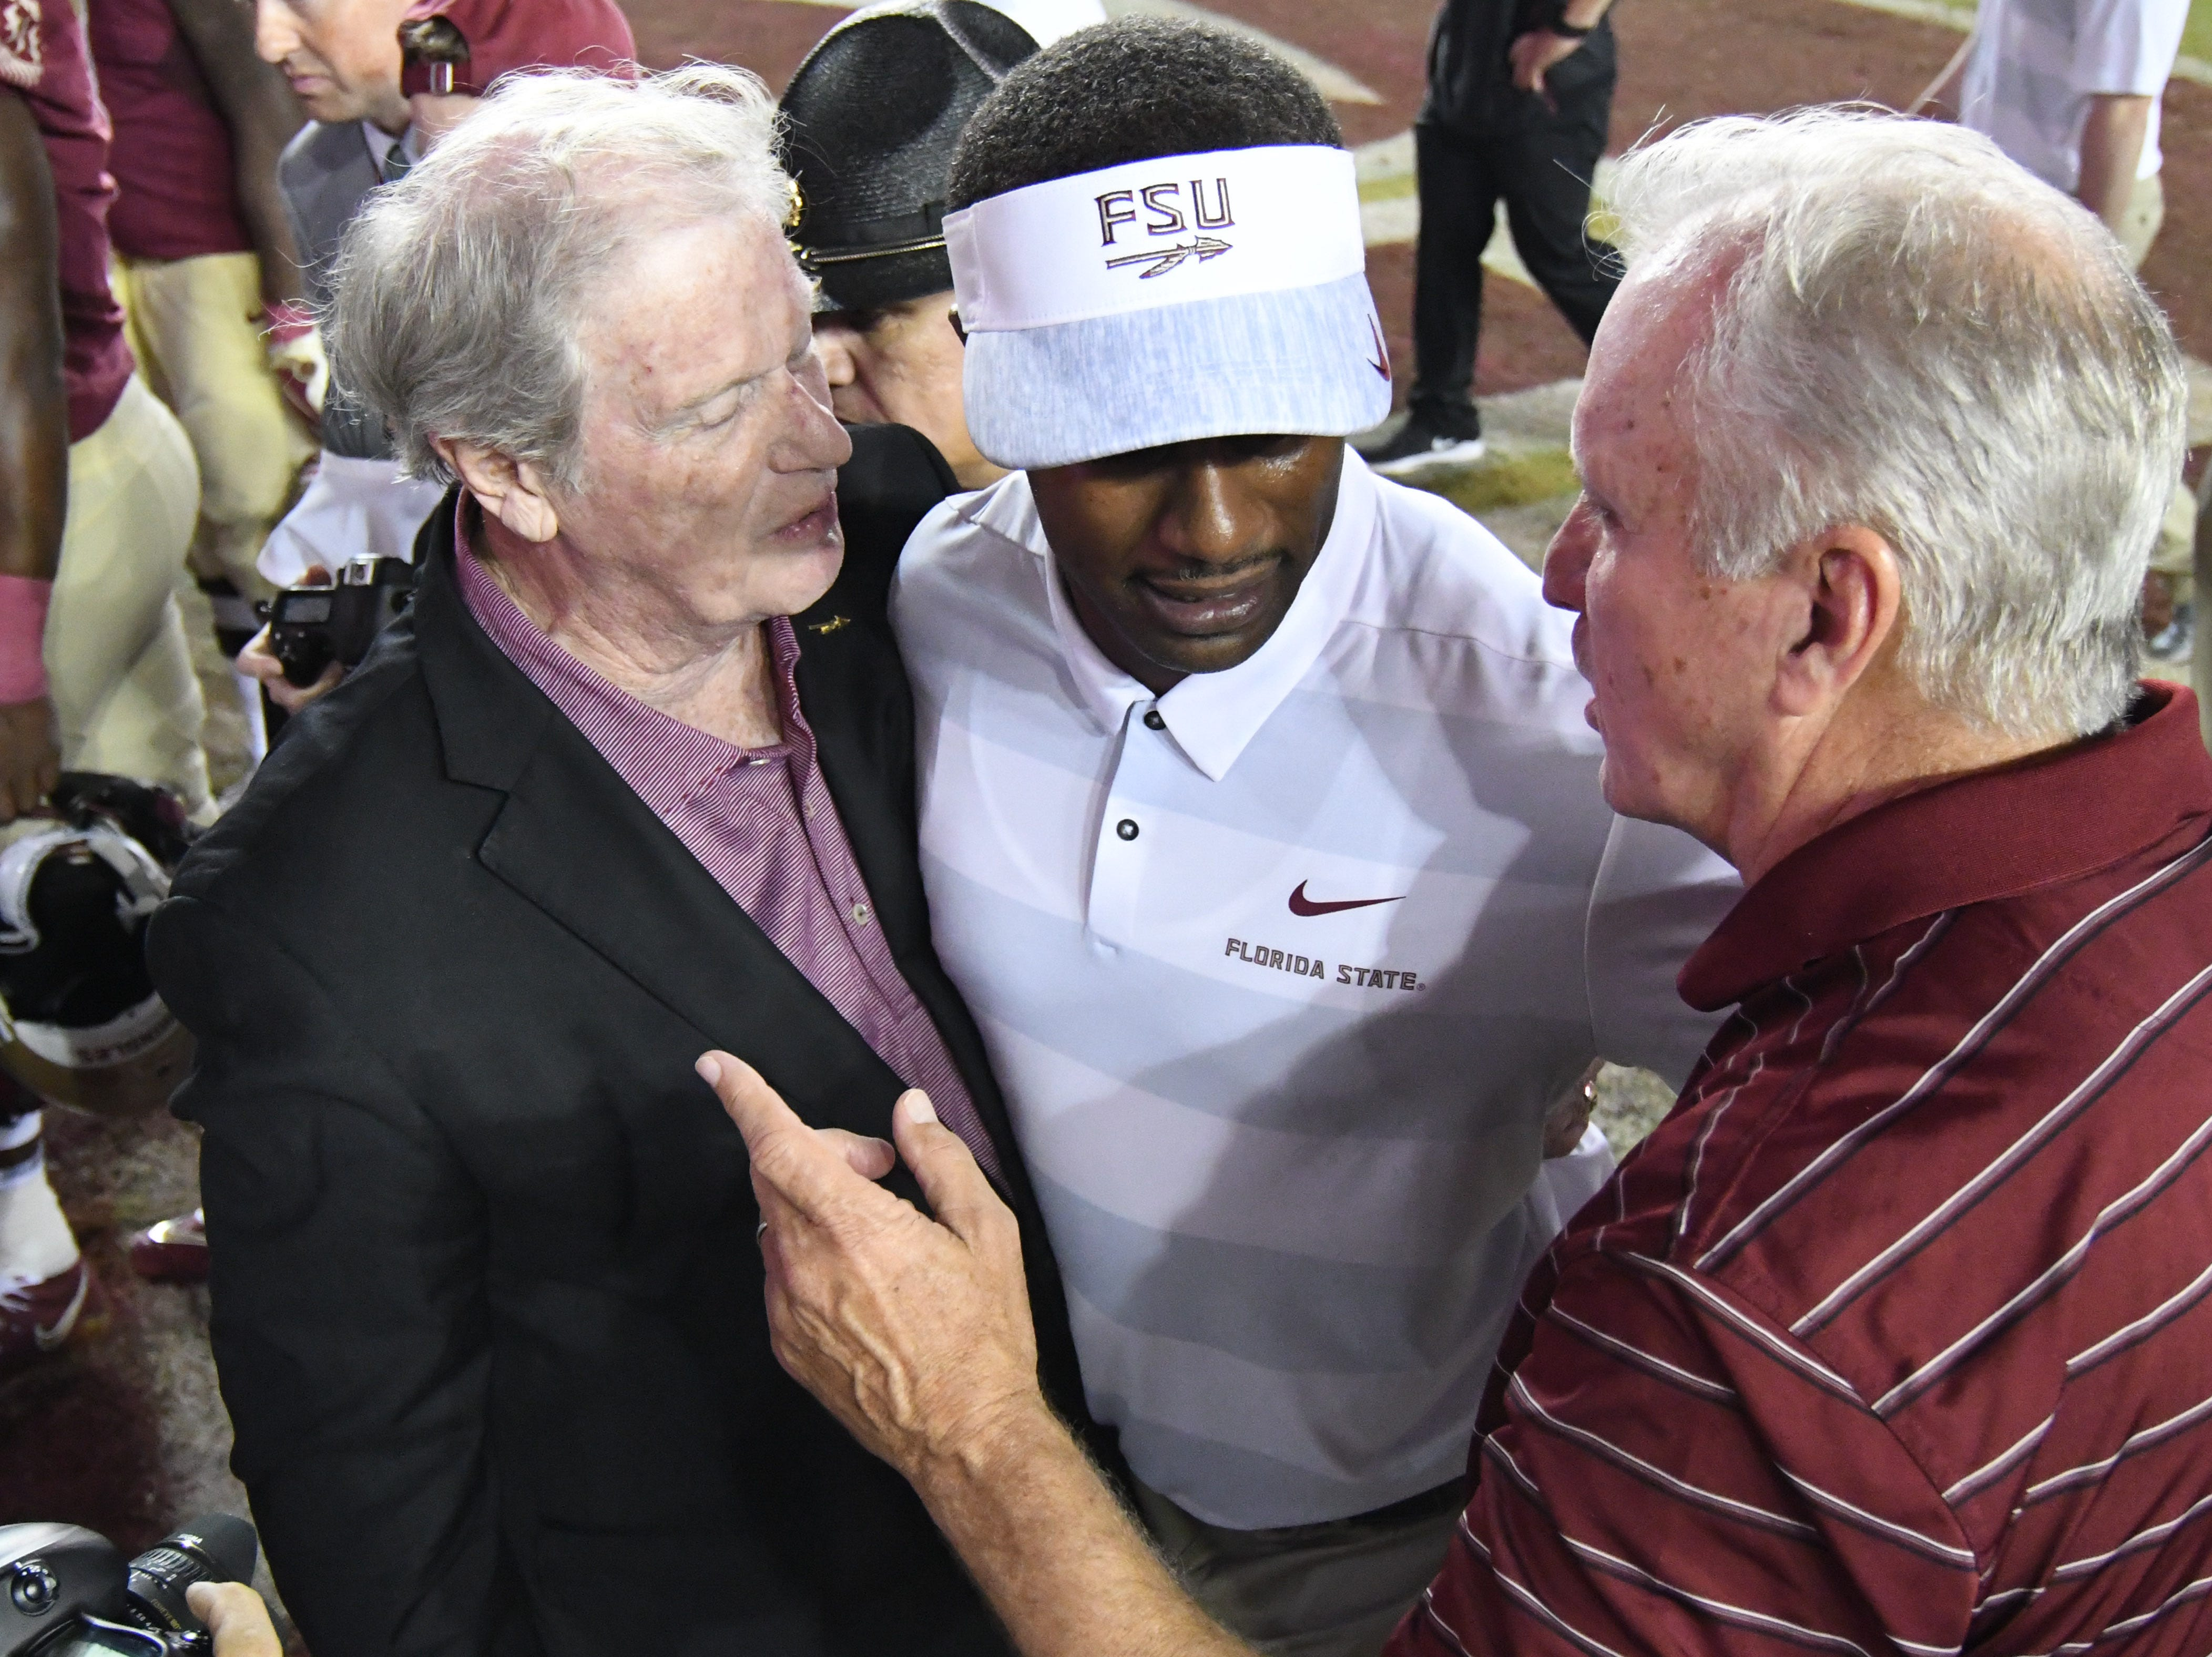 FSU head coach Willie Taggart talking to FSU President Thrasher after his first career win at Florida State.